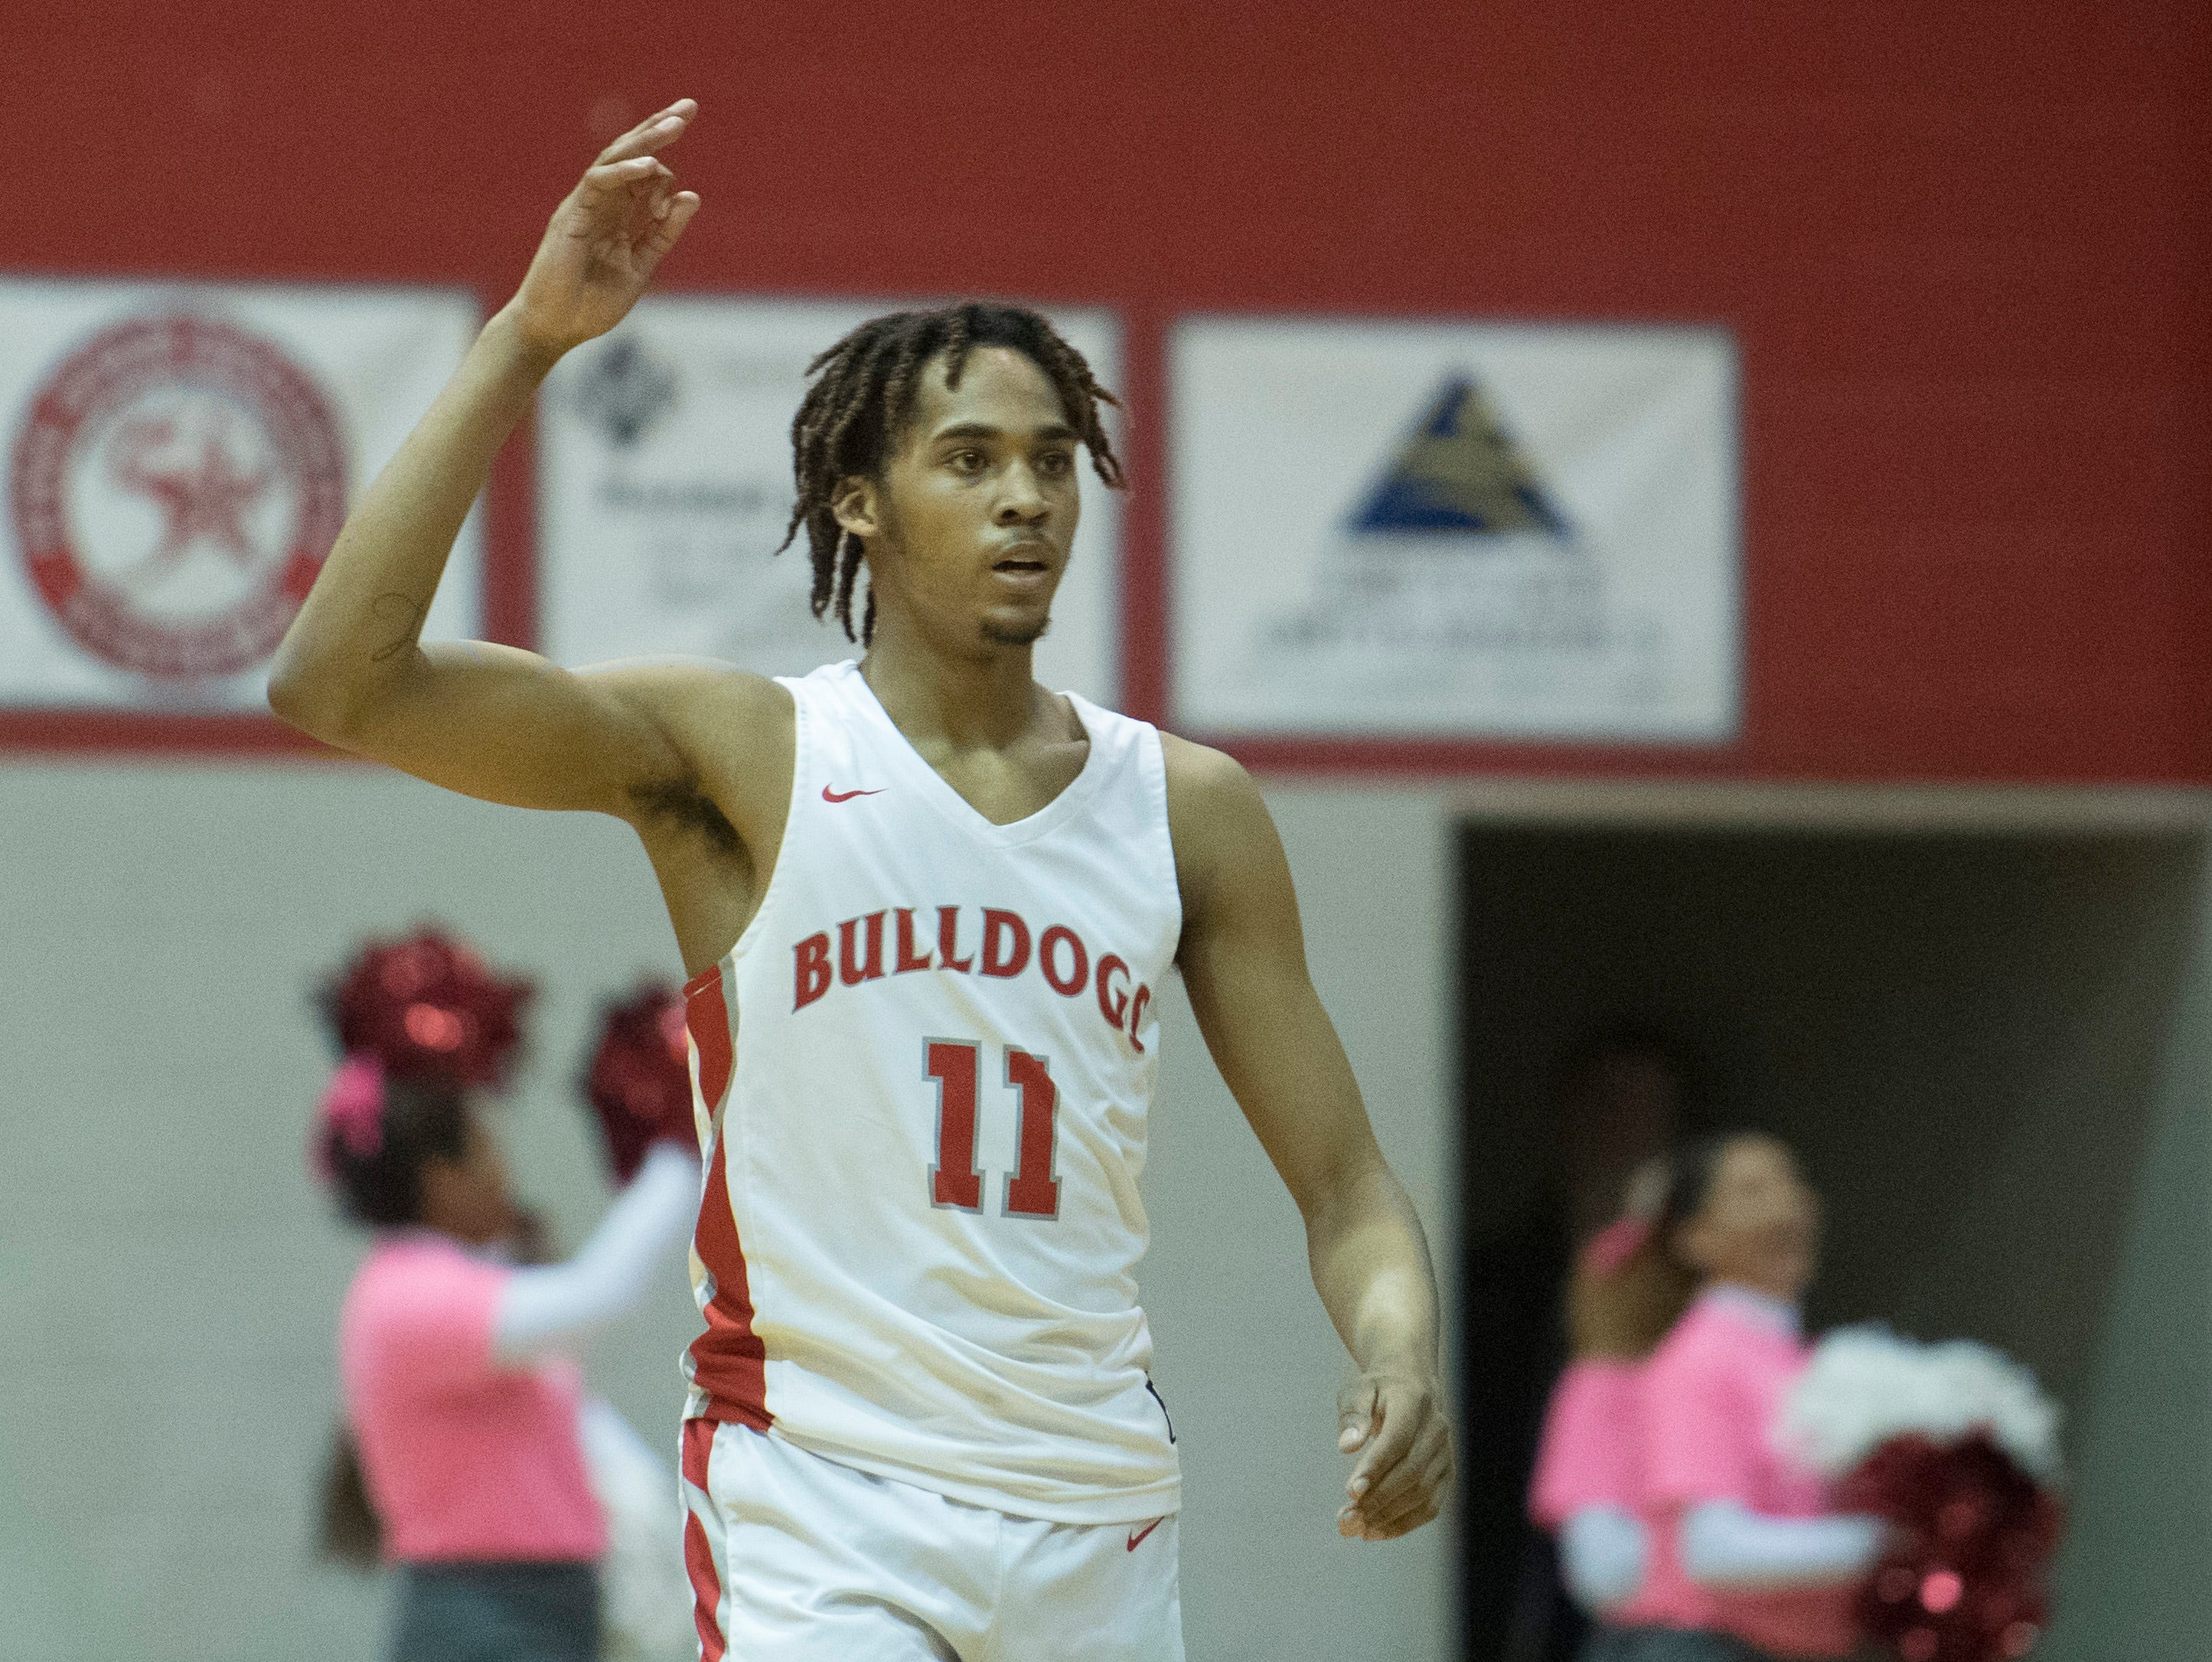 Bosse's George Madison (11) reacts after Bosse's Kolten Sanford (45) sinks a 3-point basket during the Harrison vs Bosse game at Bosse High School Tuesday, Feb. 12, 2019. The Bosse Bulldogs won 74-56.